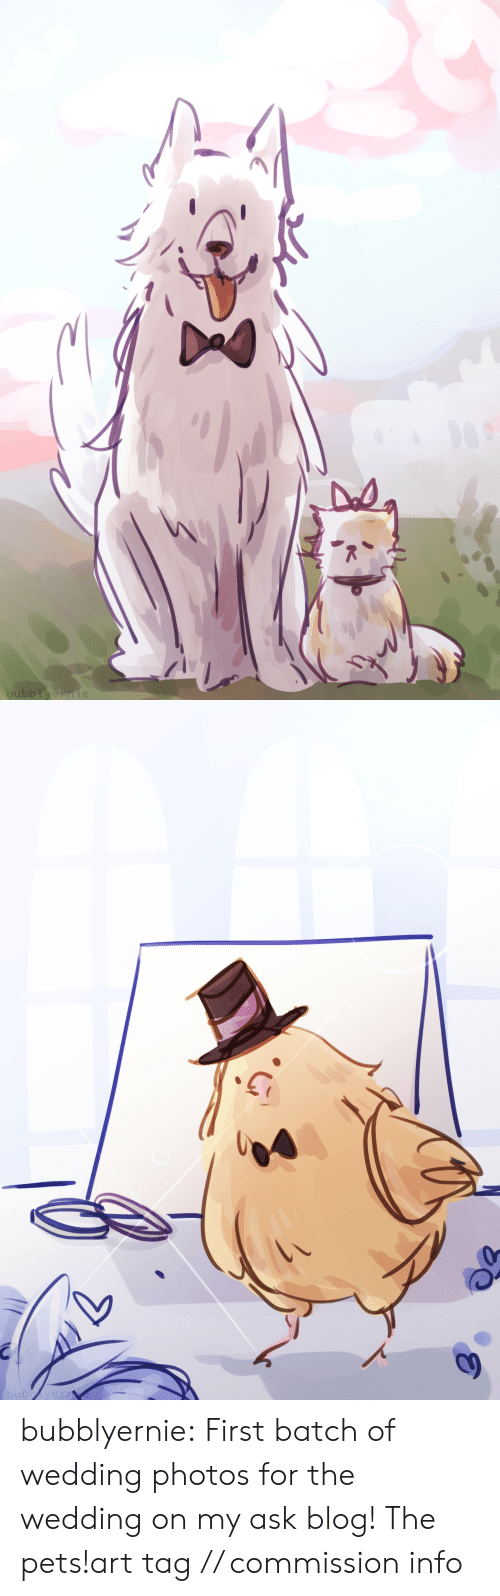 Draws: bubblyernie   bubbyern bubblyernie:  First batch of wedding photos for the wedding on my ask blog! The pets!art tag // commission info